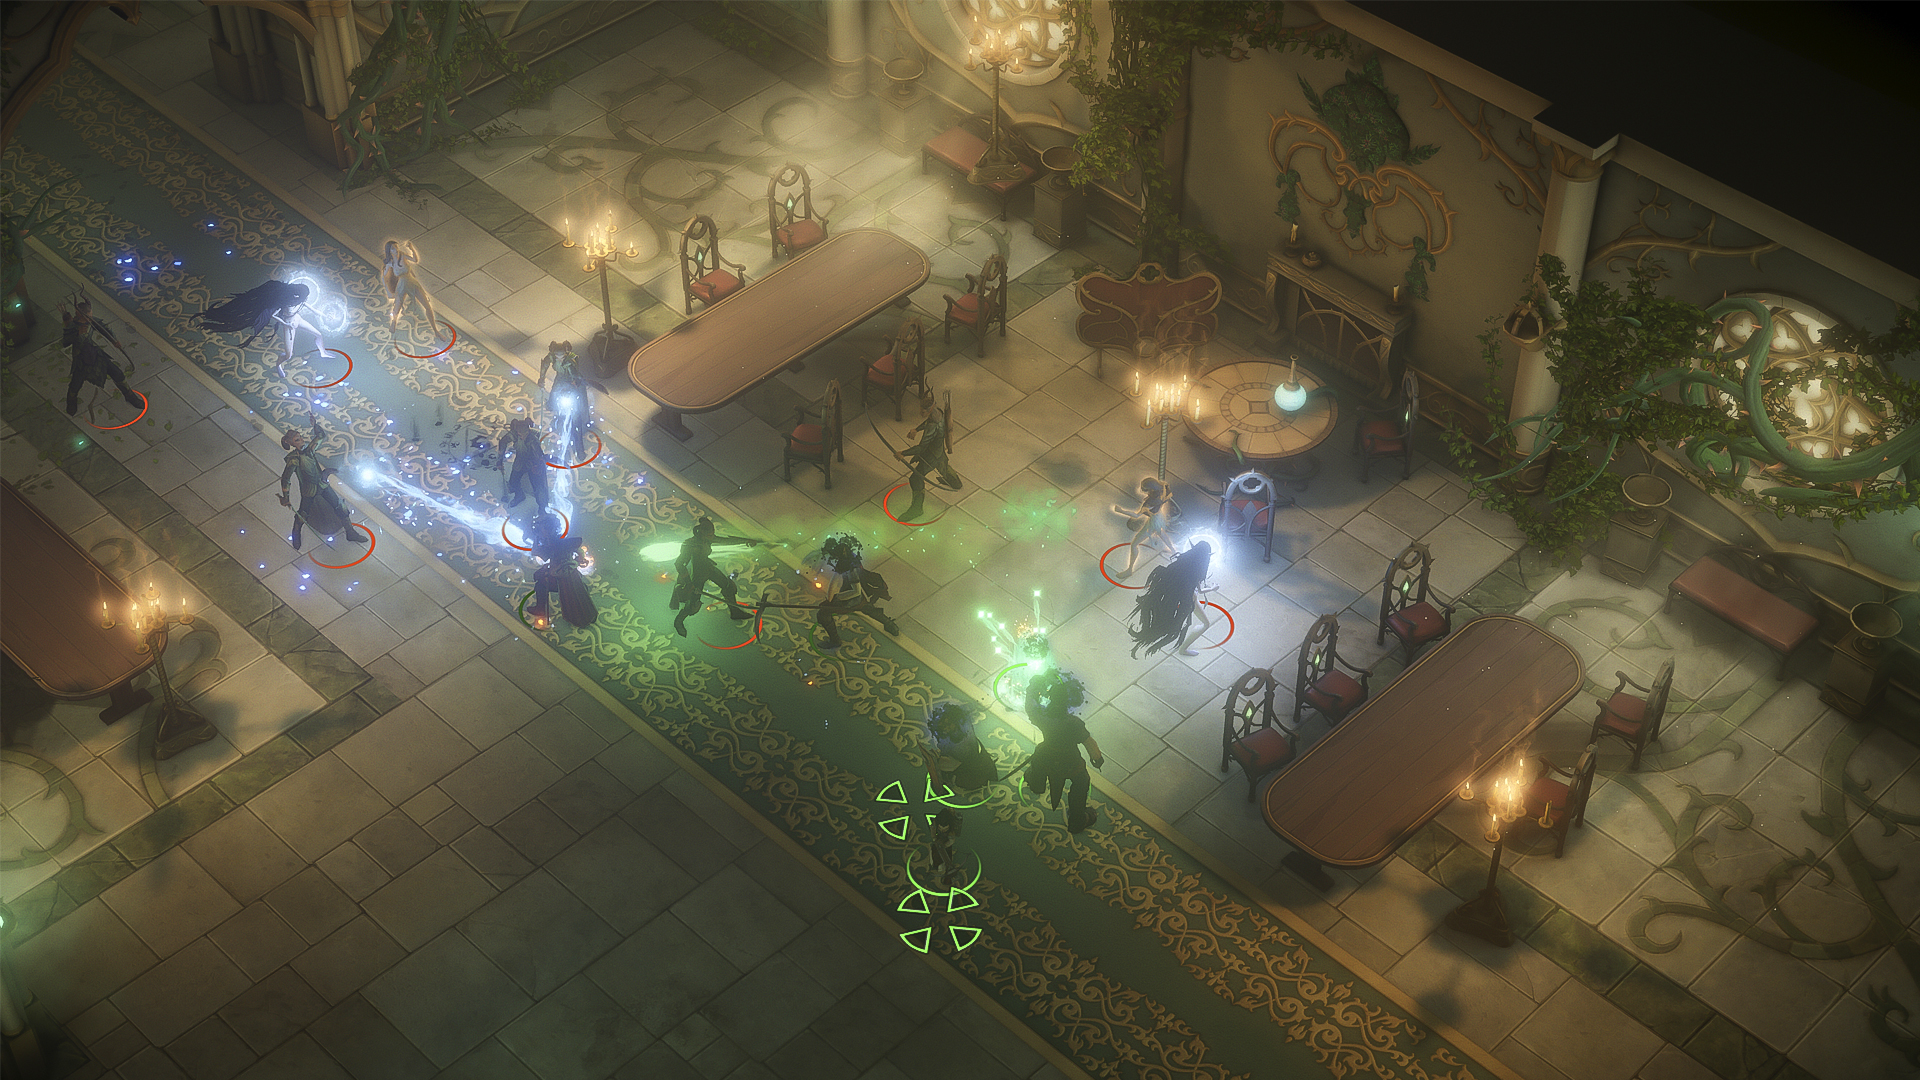 Pathfinder: Kingmaker is getting a free enhanced edition, and you can play the beta now